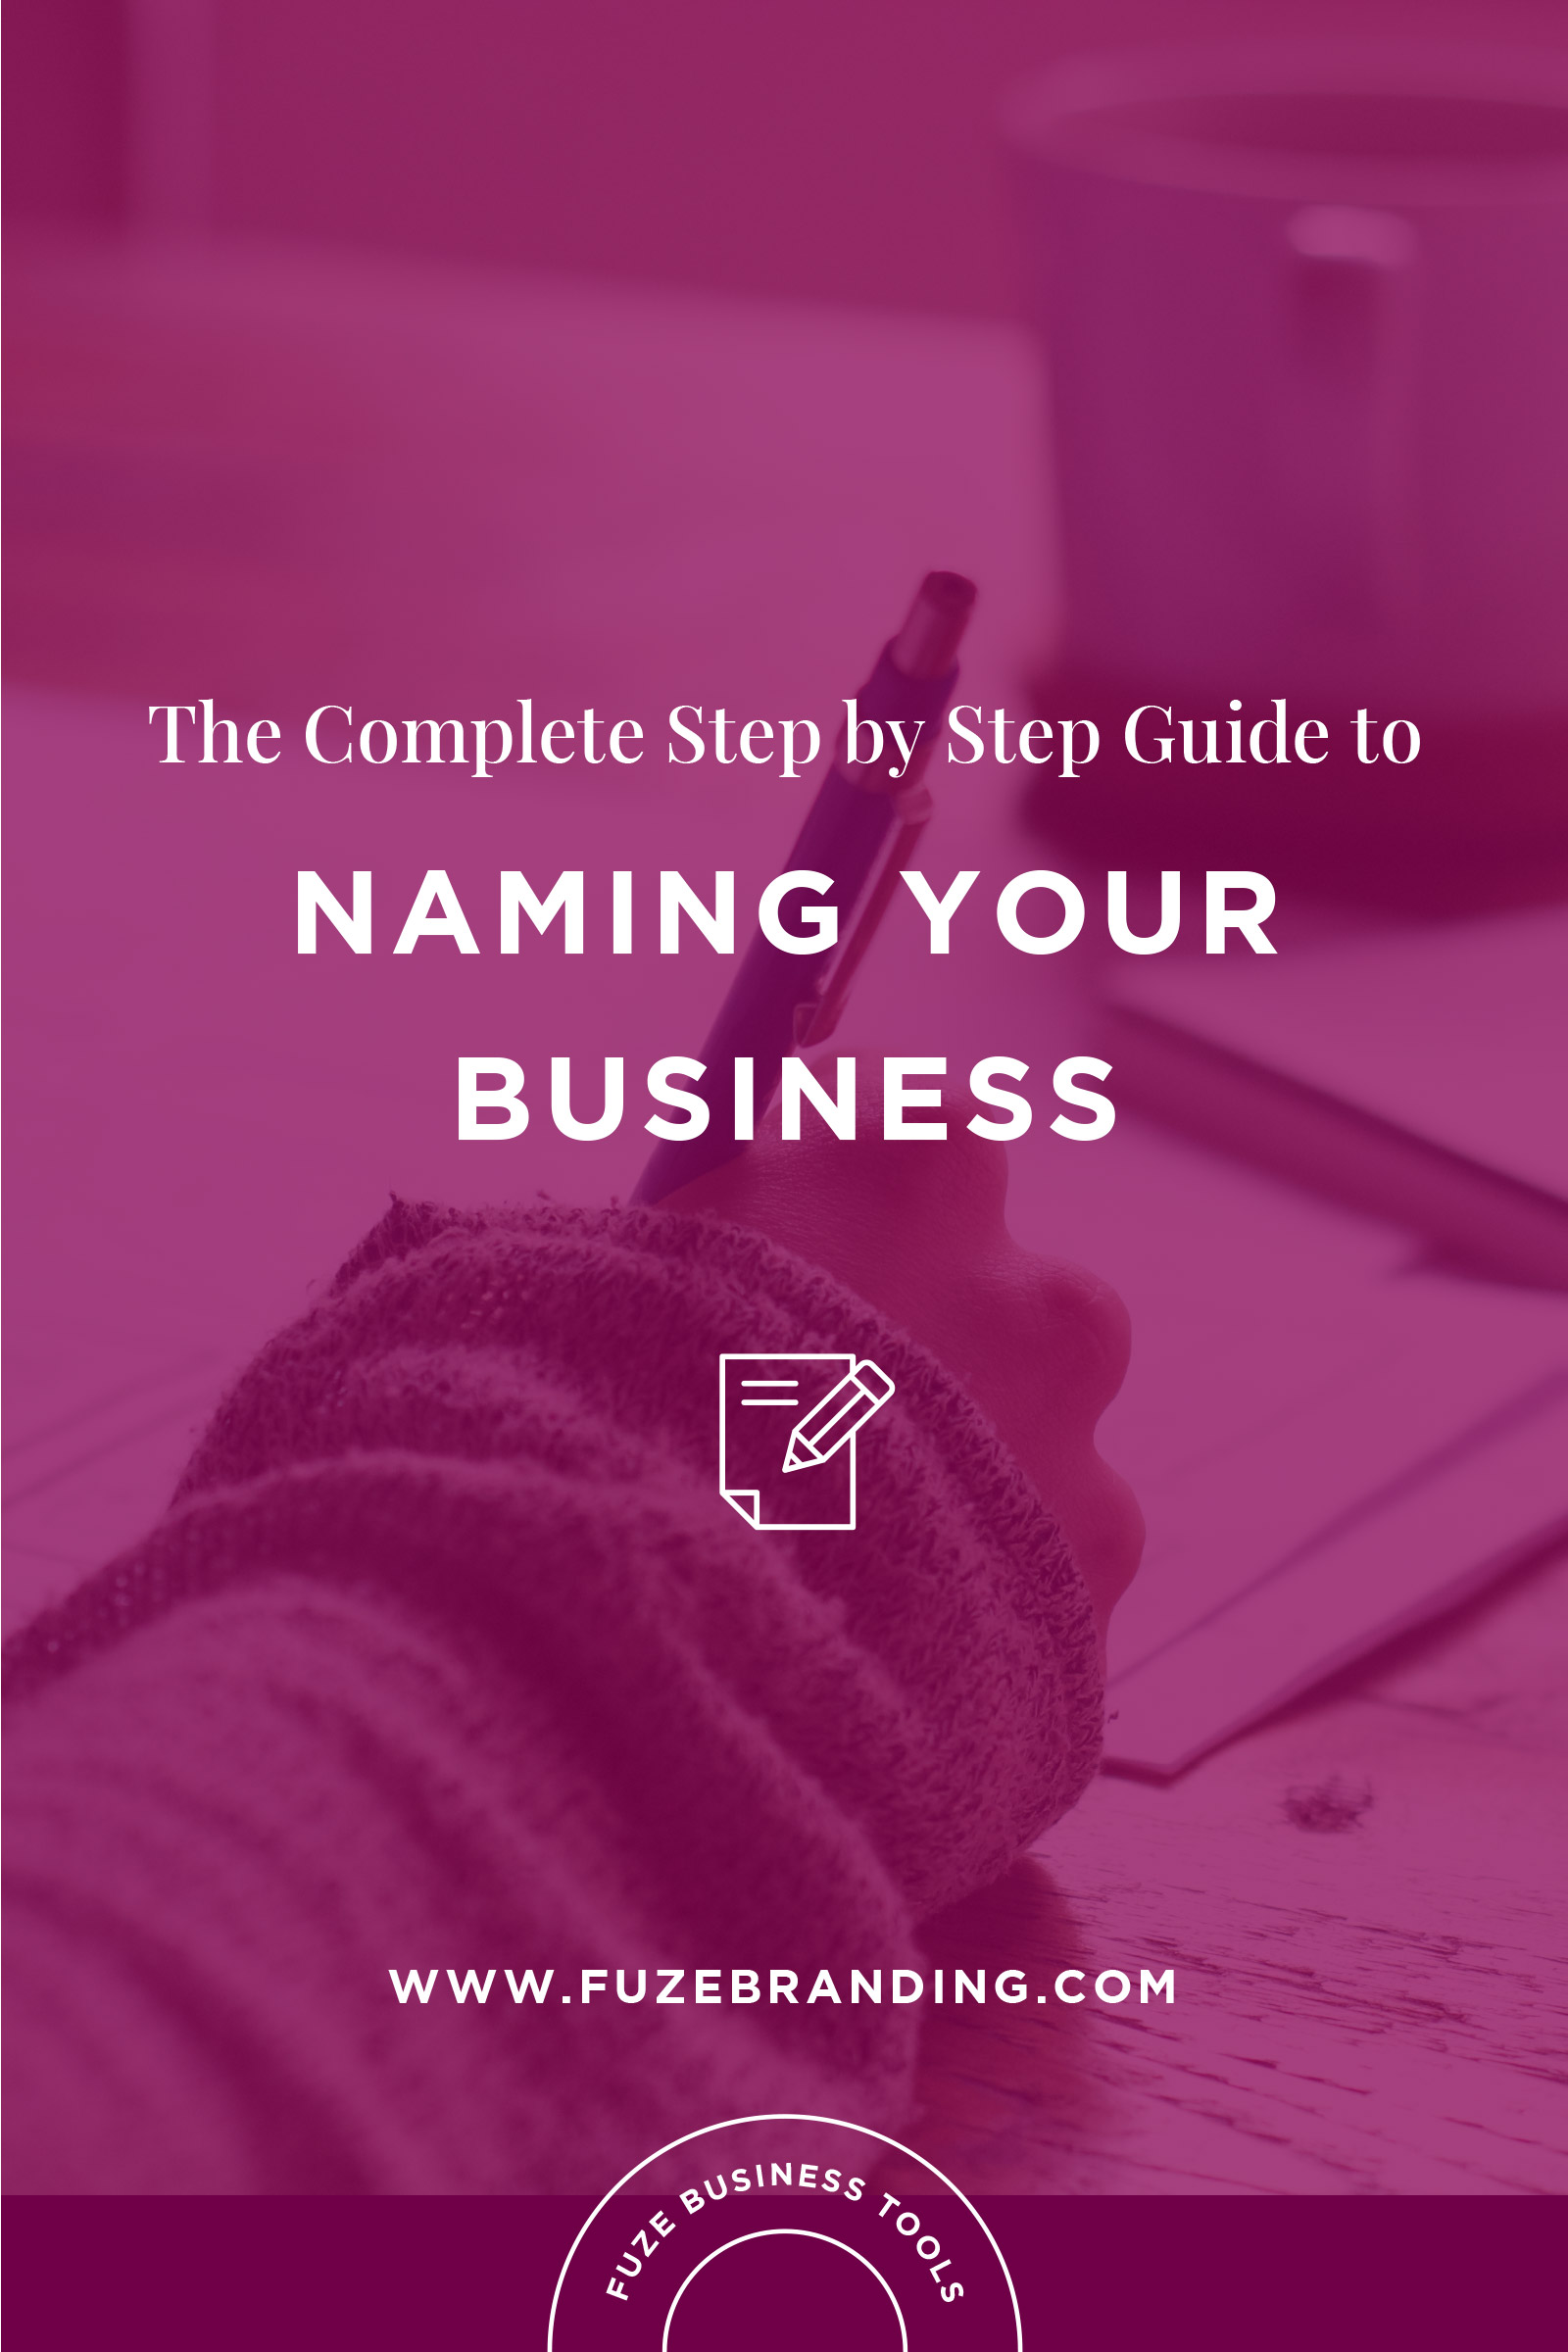 Business Step Fuze Branding The Complete Step By Step Guide To Naming Your